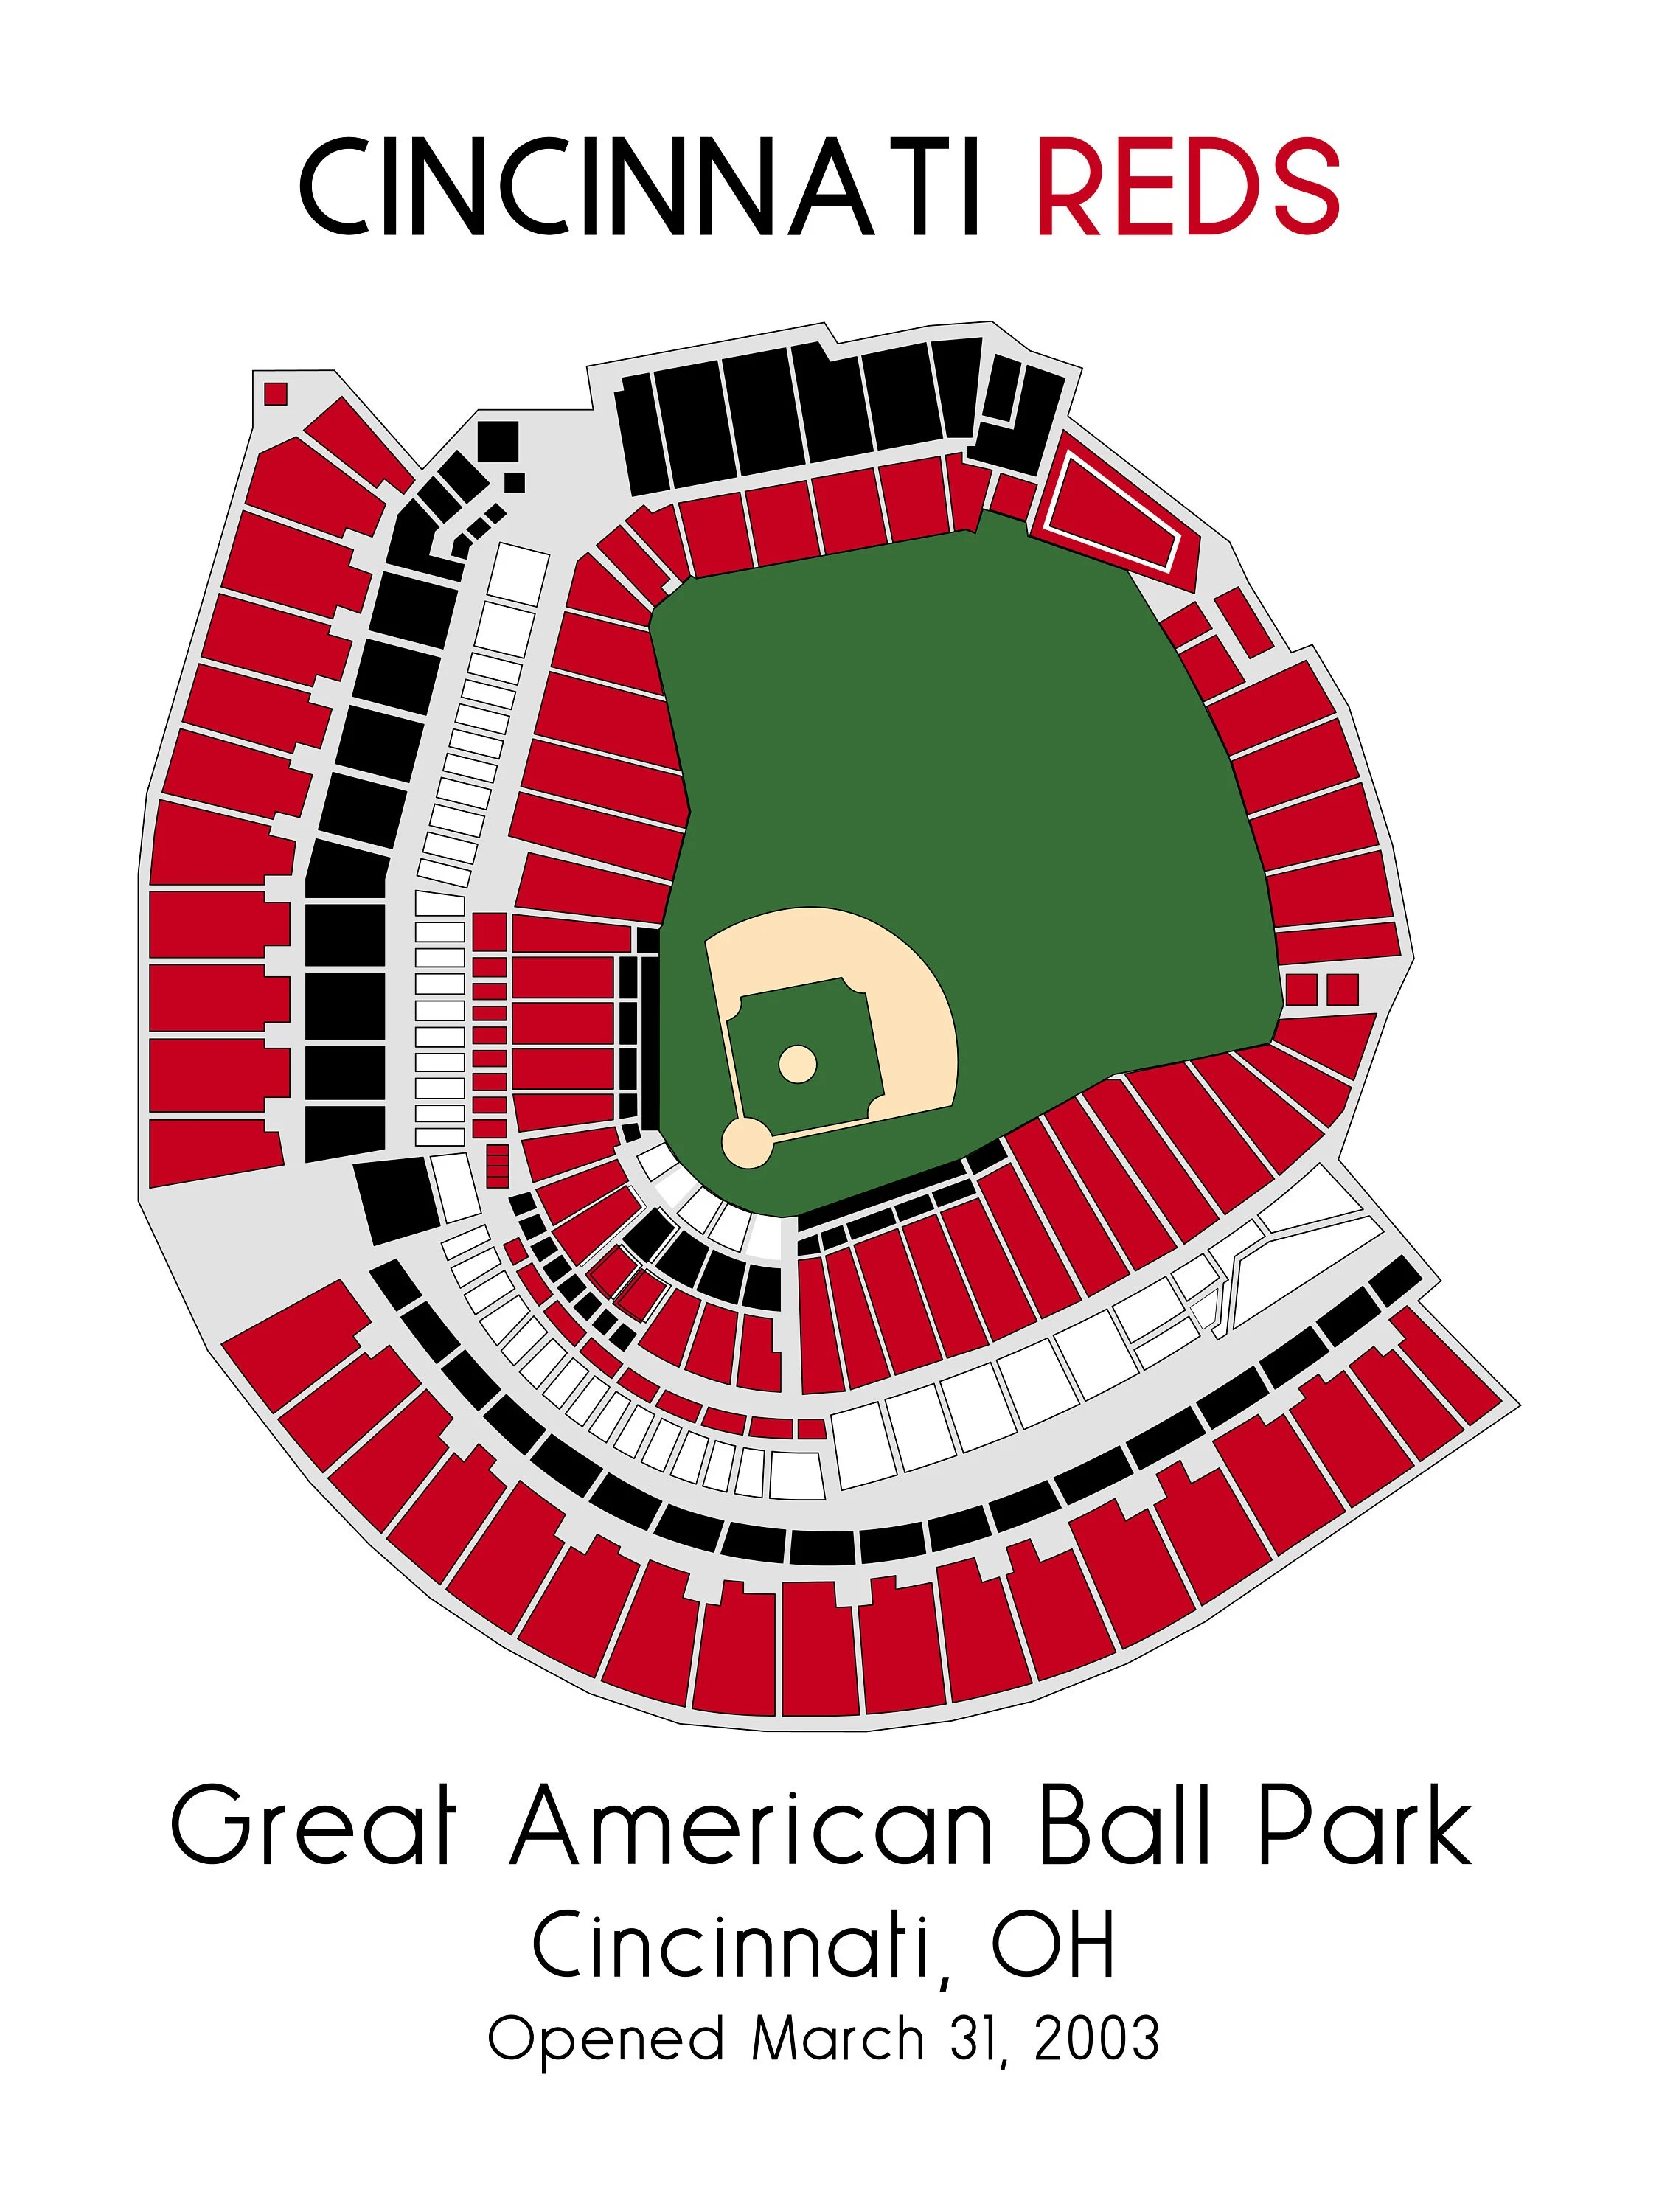 Reds Stadium Seating Chart : stadium, seating, chart, Cincinnati, Stadium, Ballpark, Baseball